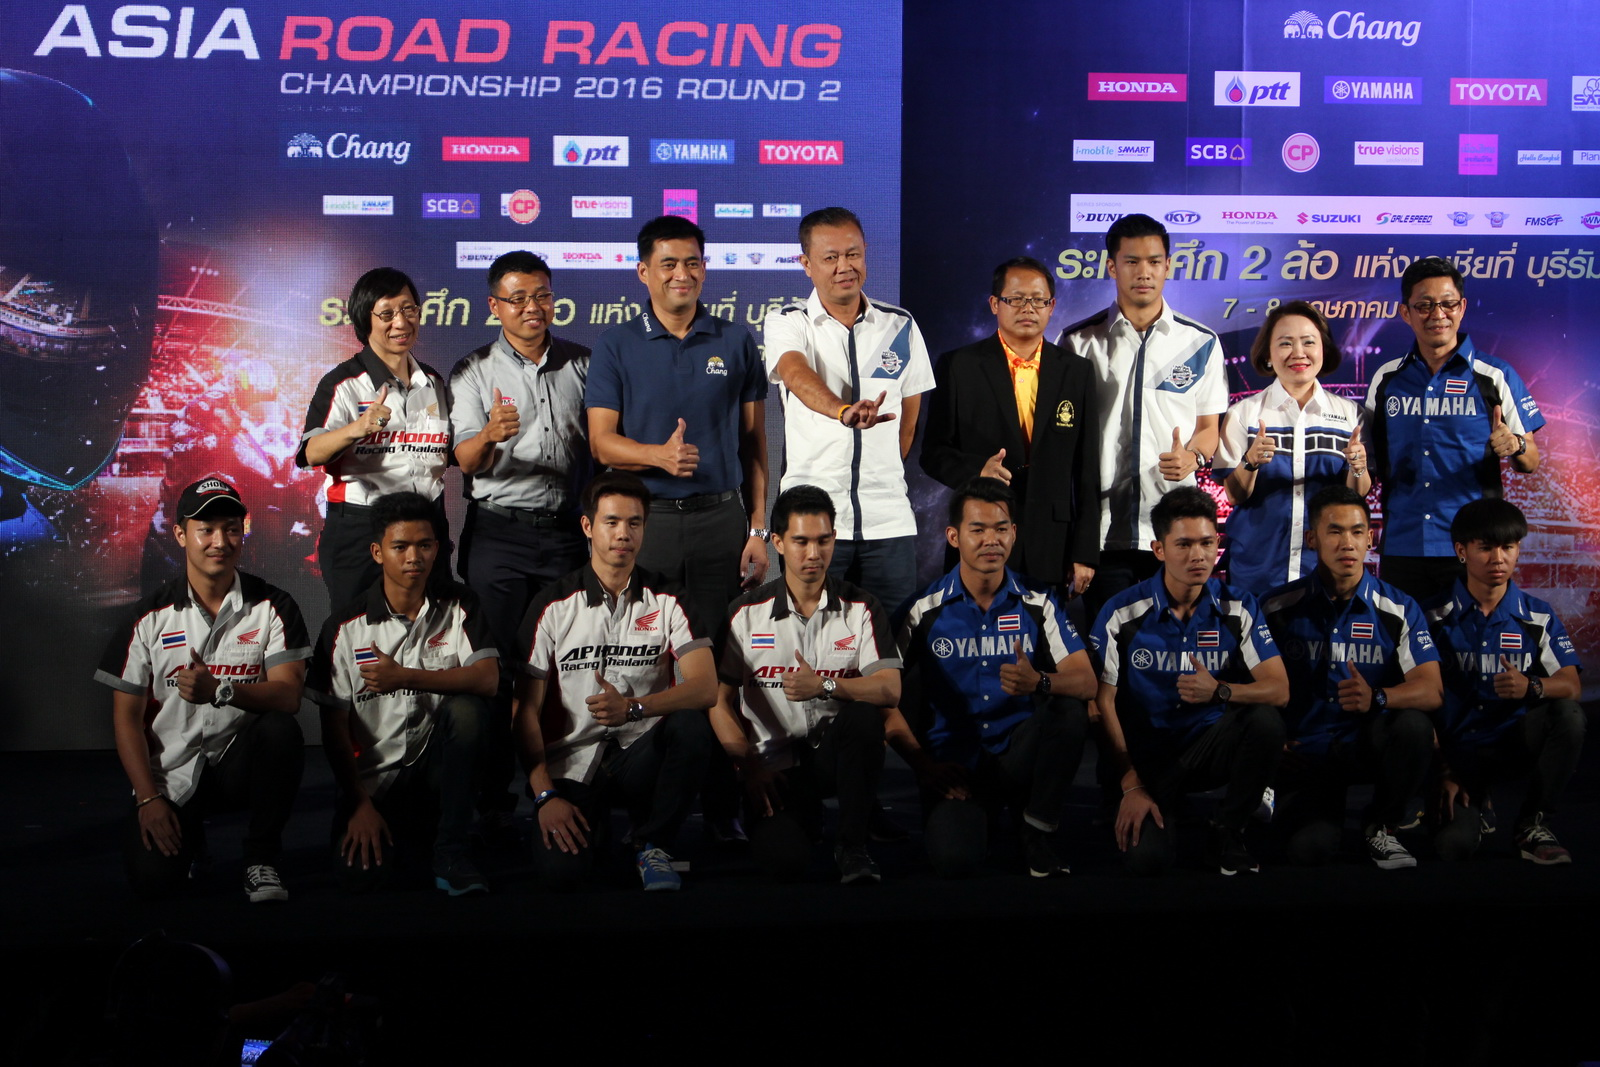 asia_road_race_press_13